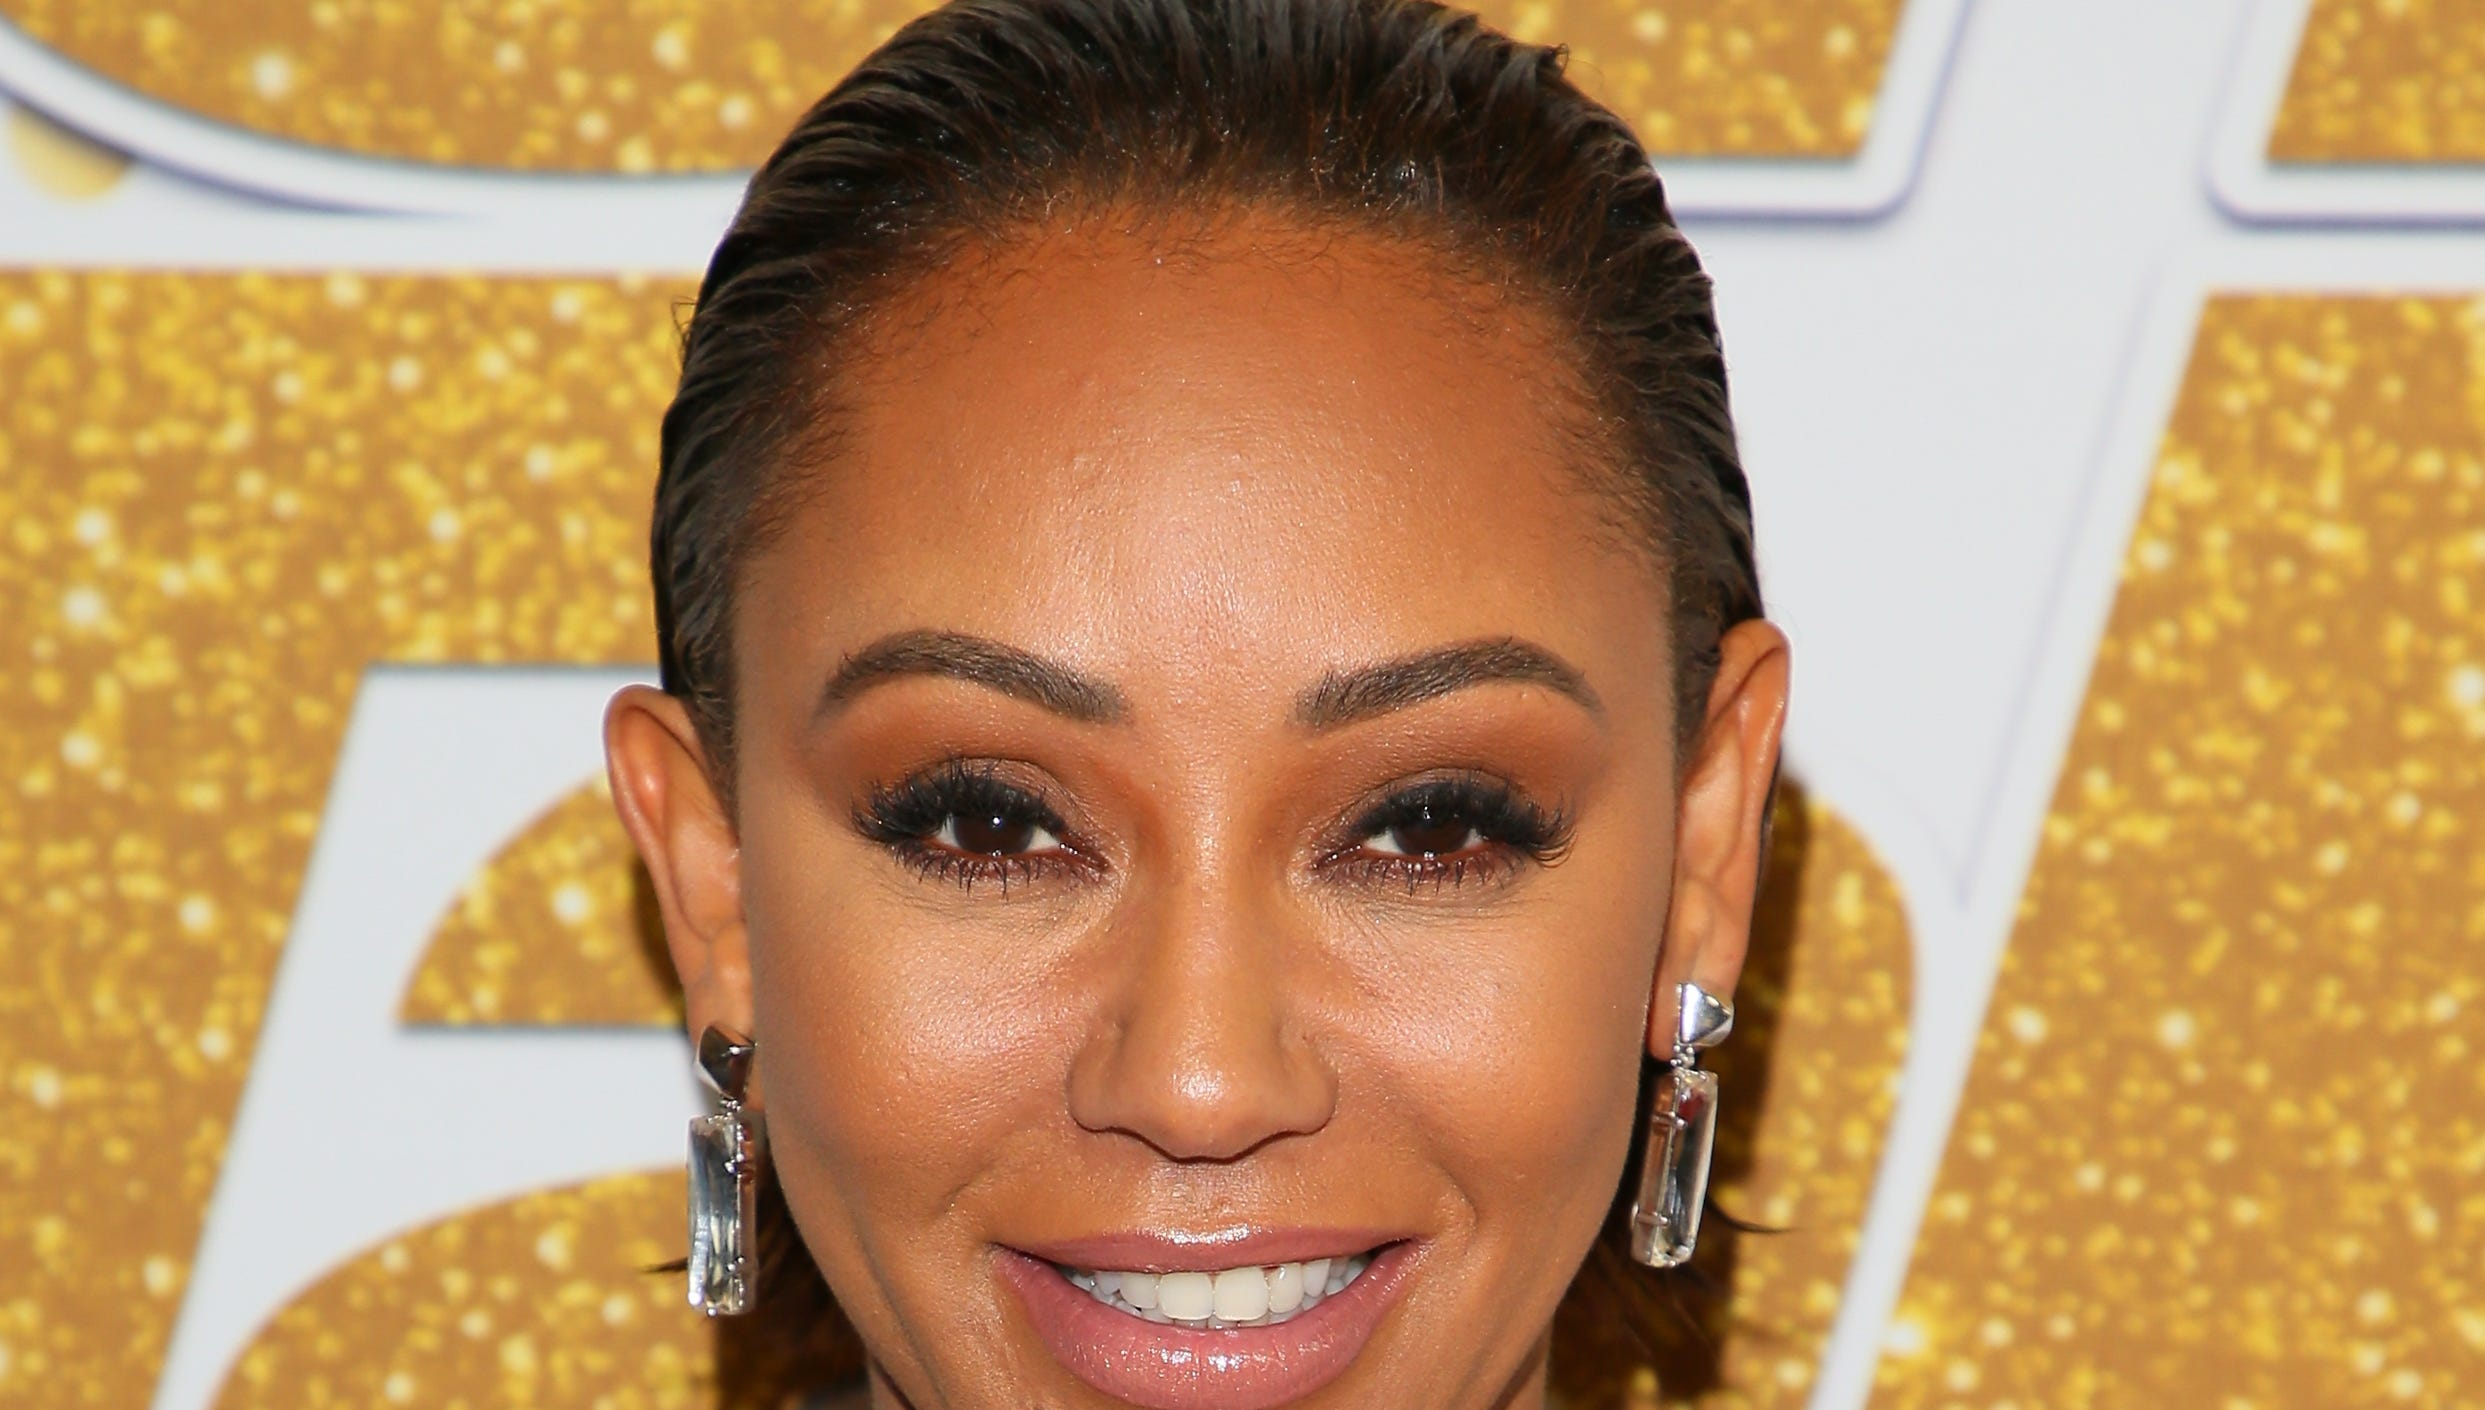 Mel B opens up about attempting suicide in 2014.